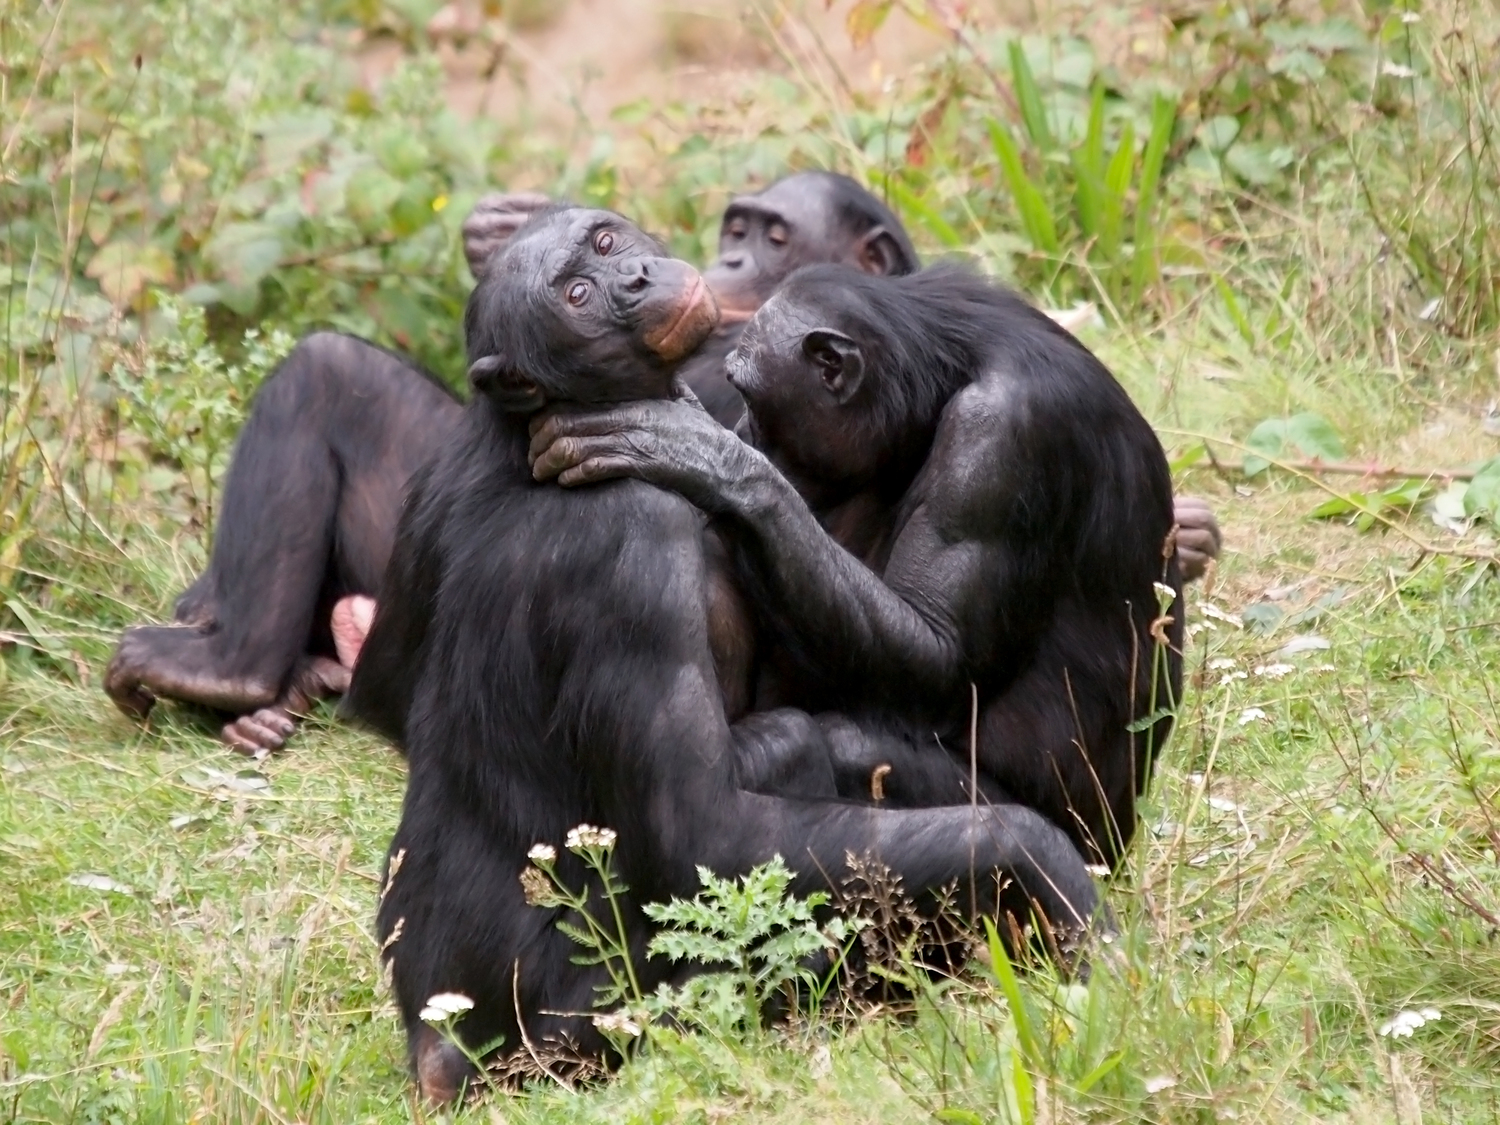 Give the people some sexual inspiration  show them the bonobo ...